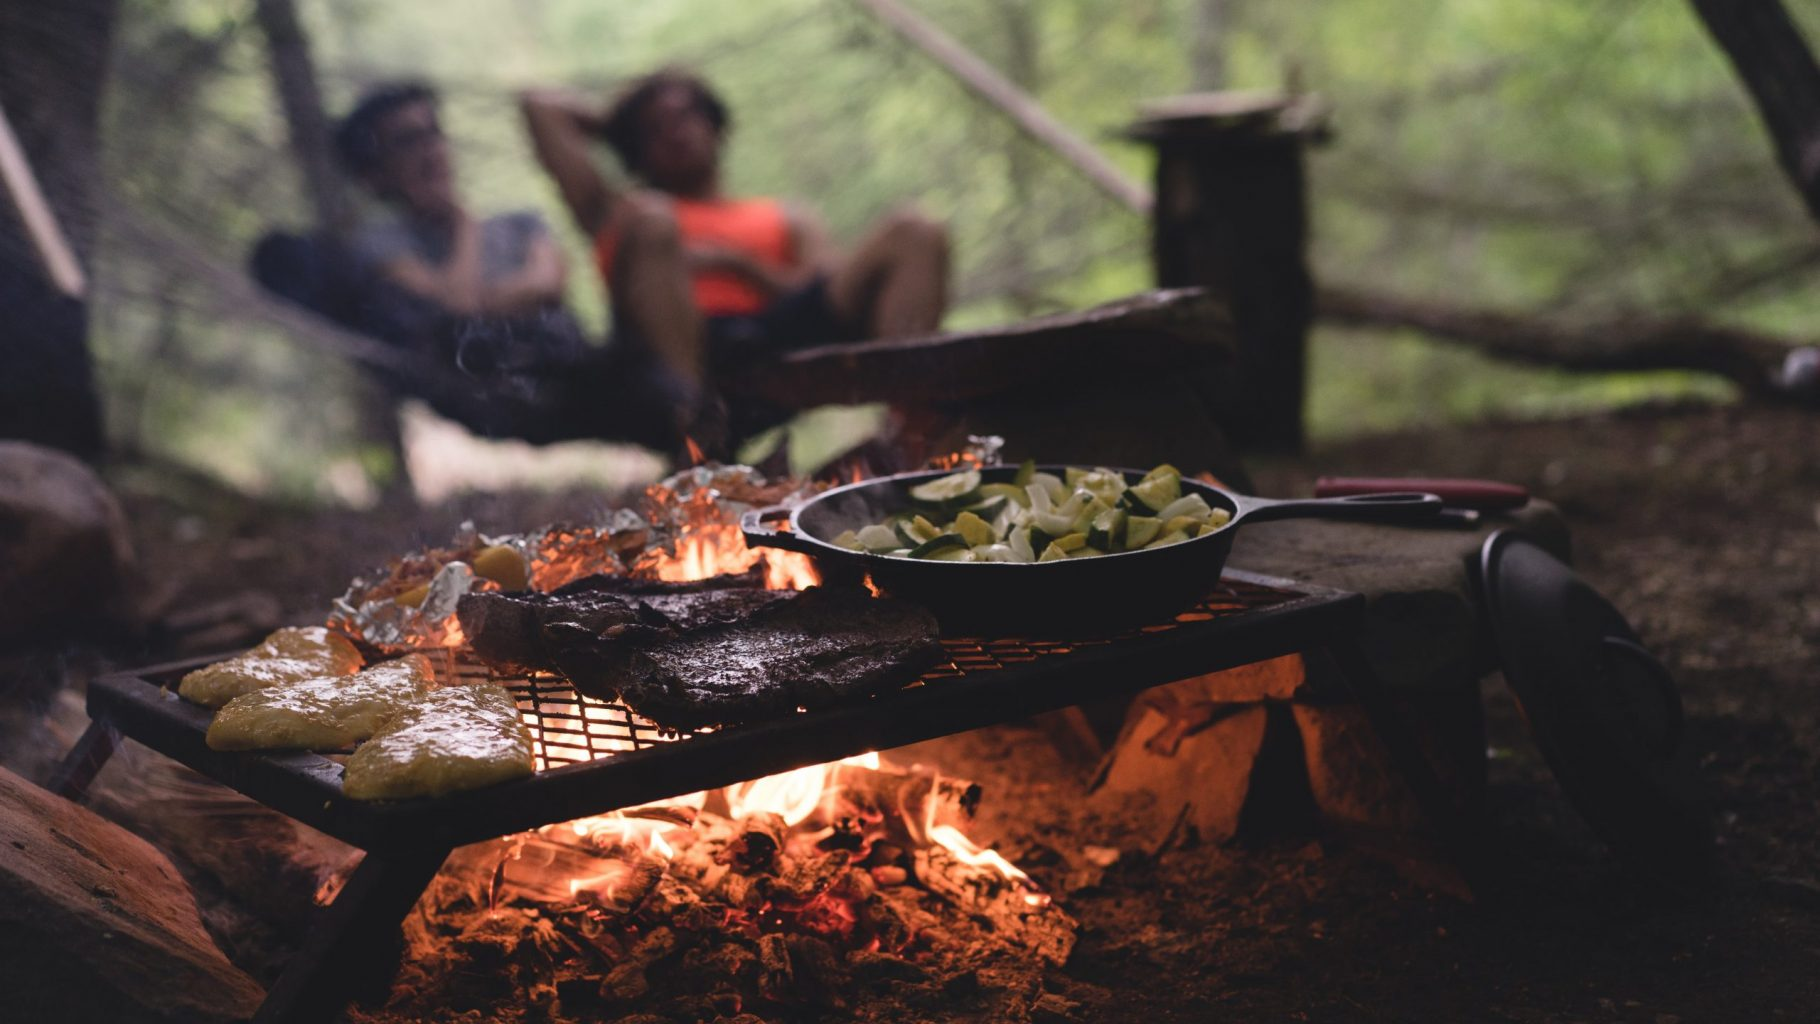 Image: Steak, potatoes, and vegetables cooking on a grate over a hot campfire.